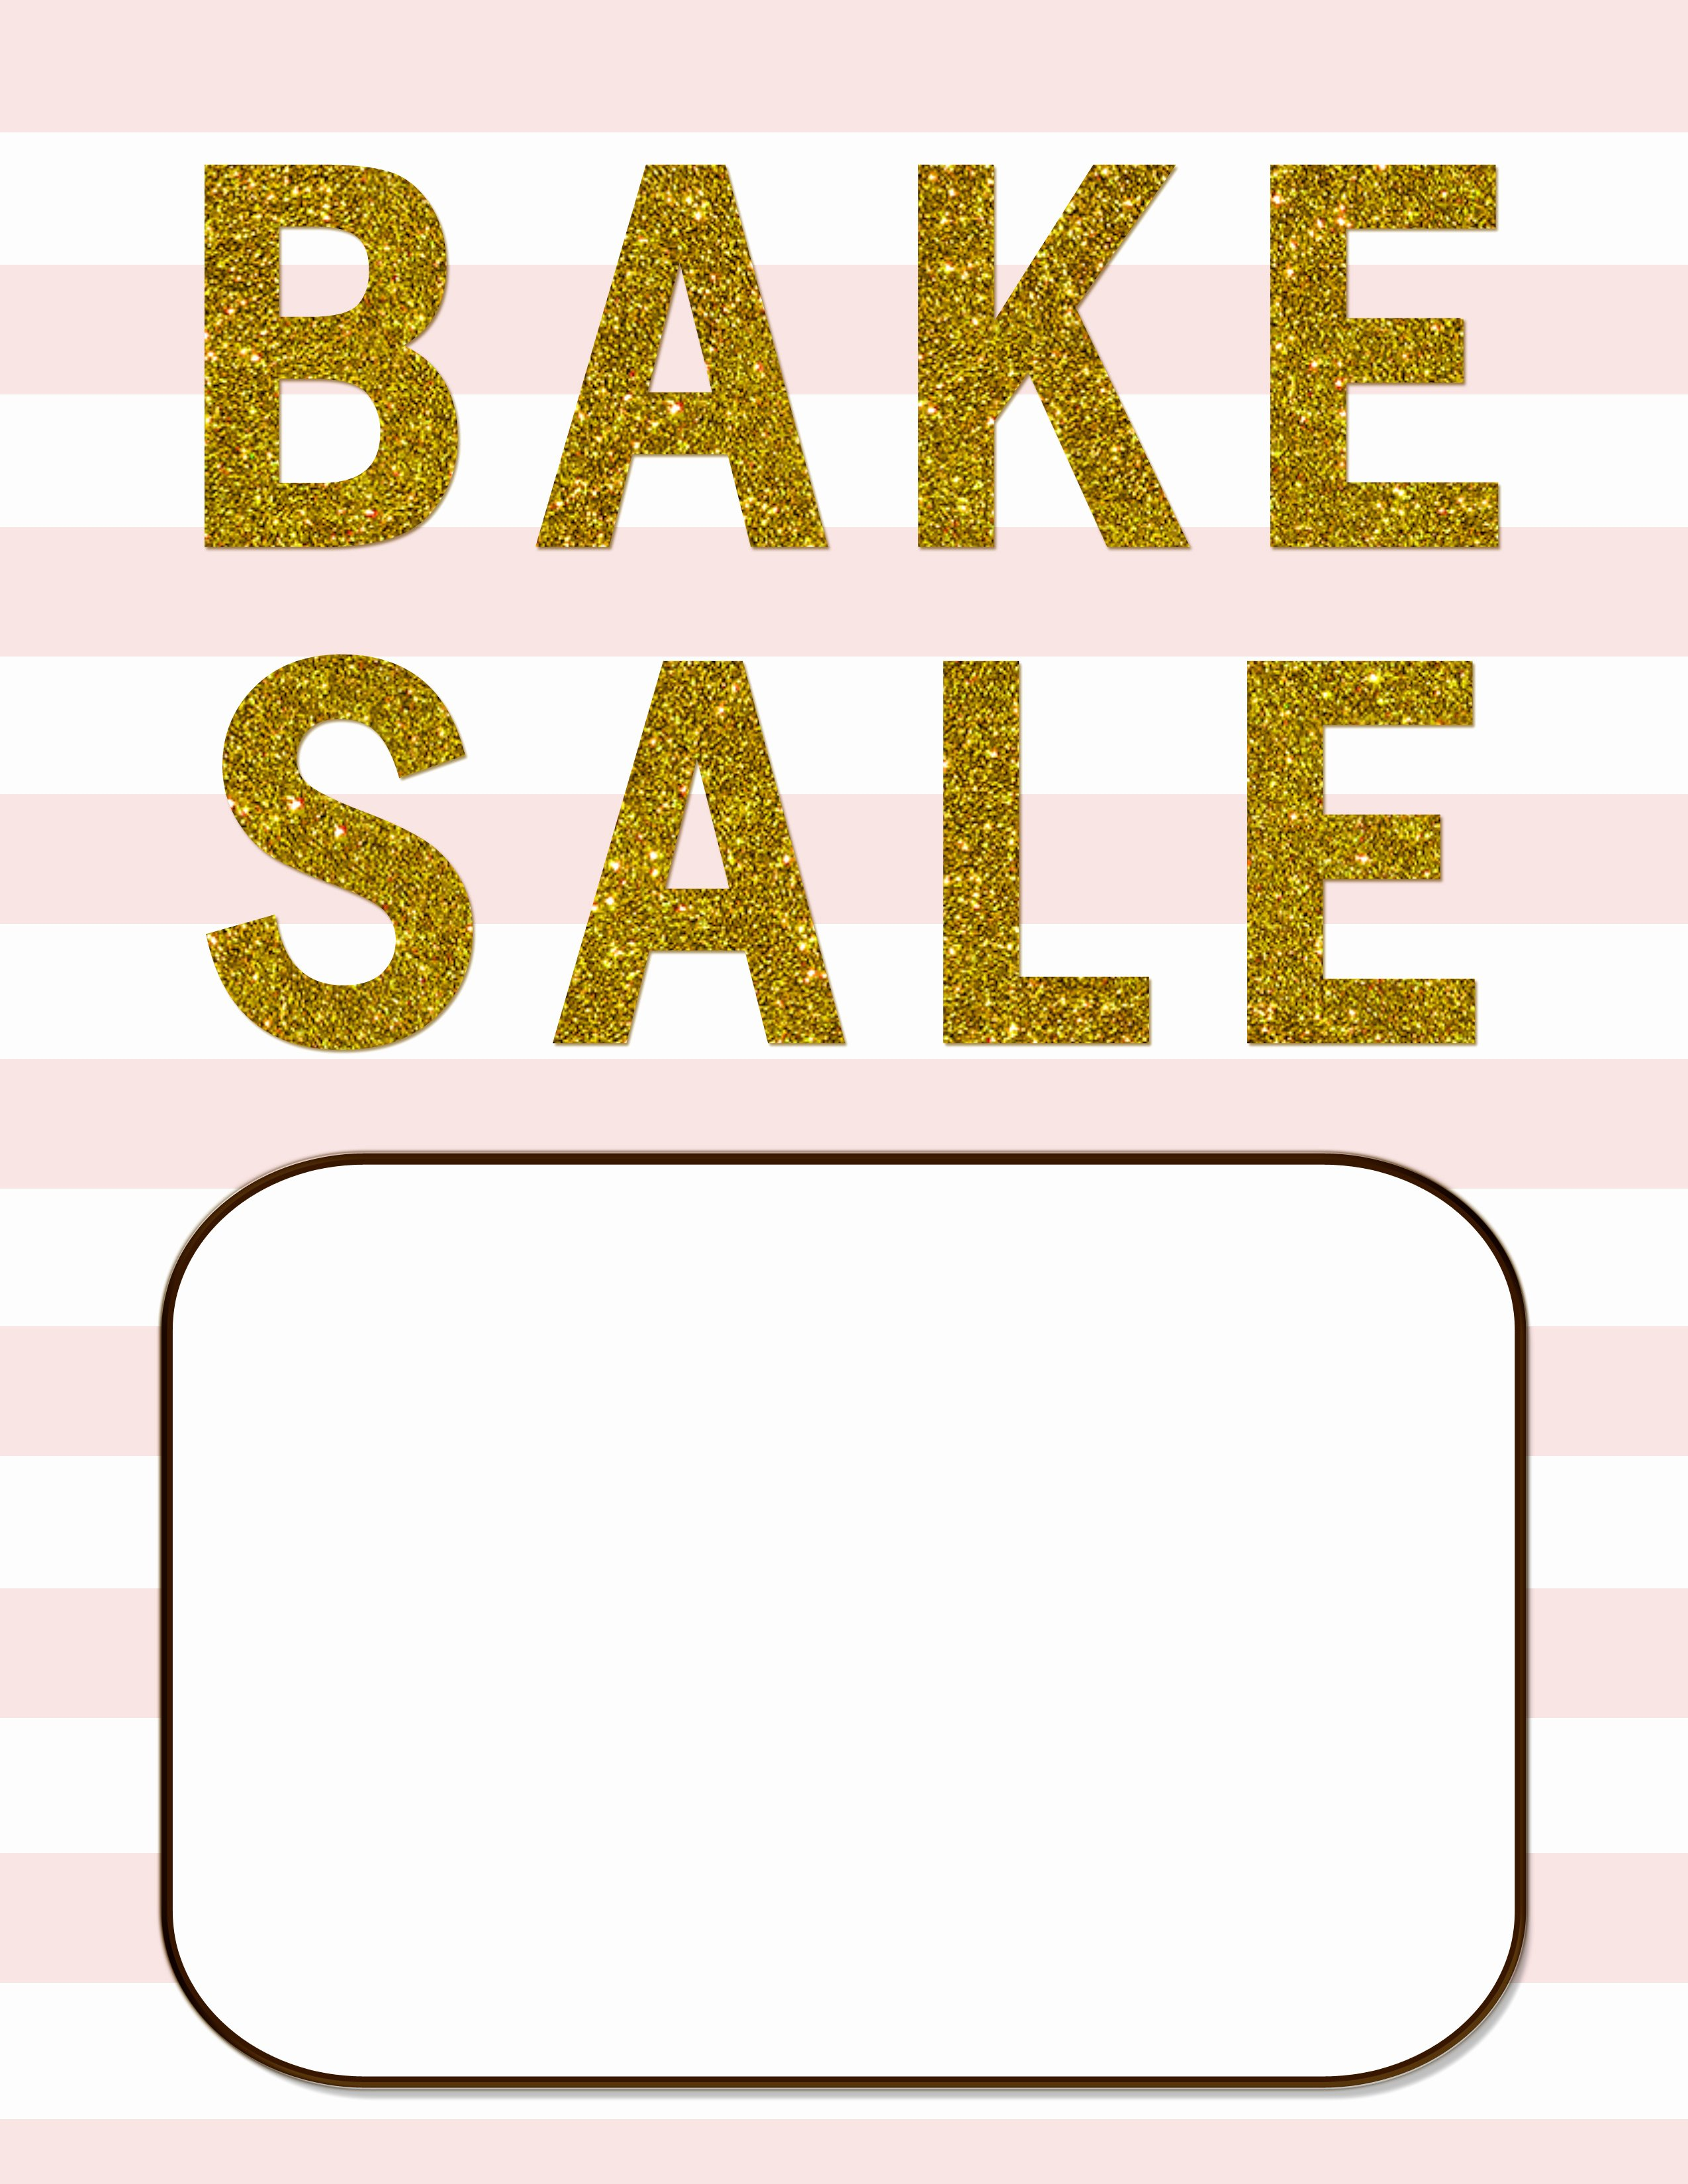 Free Bake Sale Template Inspirational Bake Sale Flyers – Free Flyer Designs